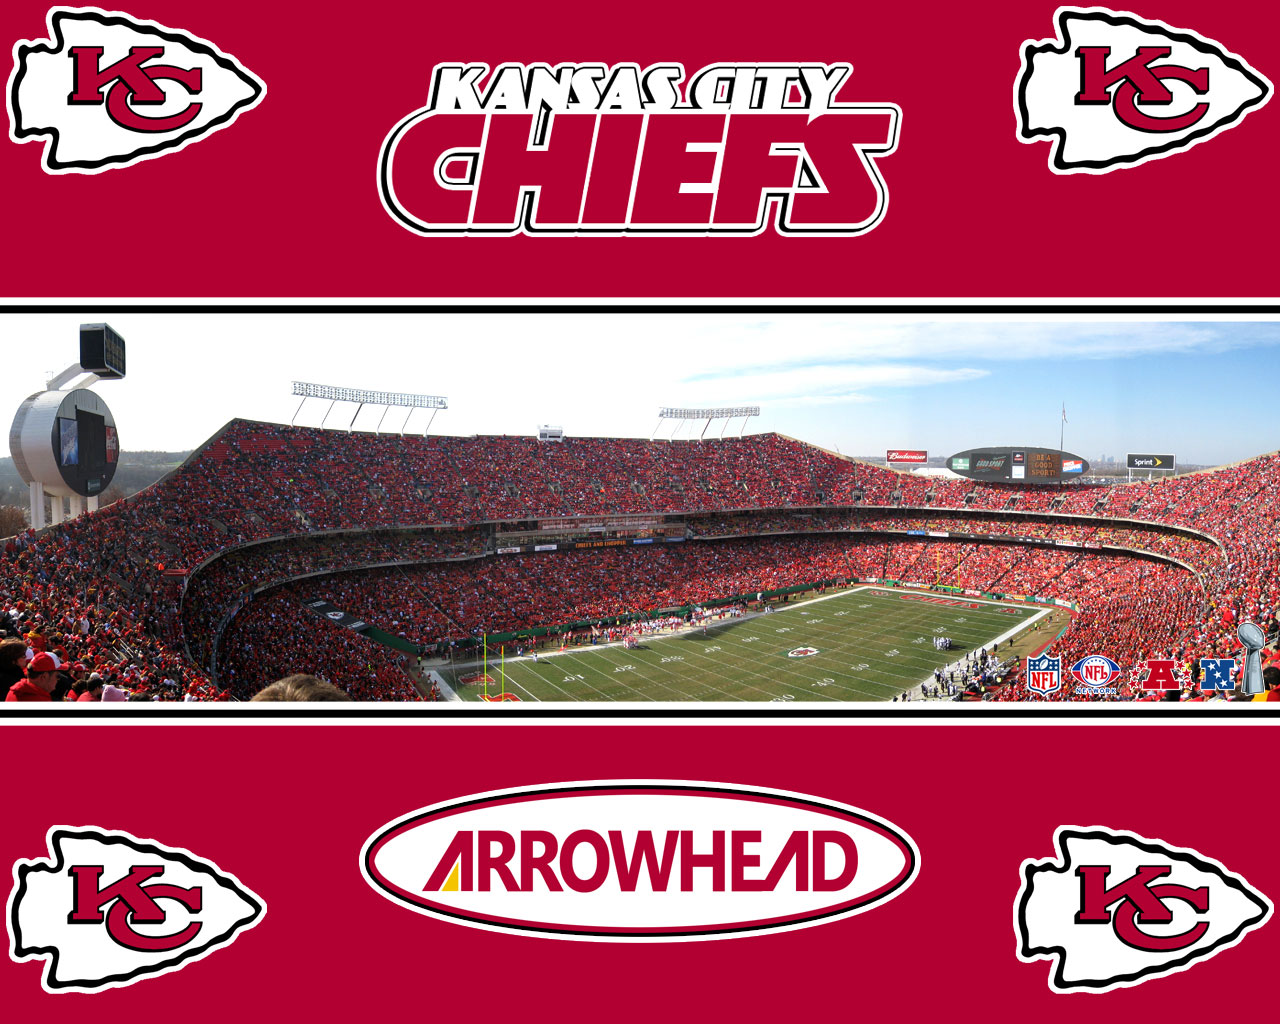 http://4.bp.blogspot.com/_SPY5-z18DBU/TThOxPRJnsI/AAAAAAAAAeM/jFKmf-3moN4/s1600/kansas_city_chiefs_wallpaper_1280x1024.jpeg